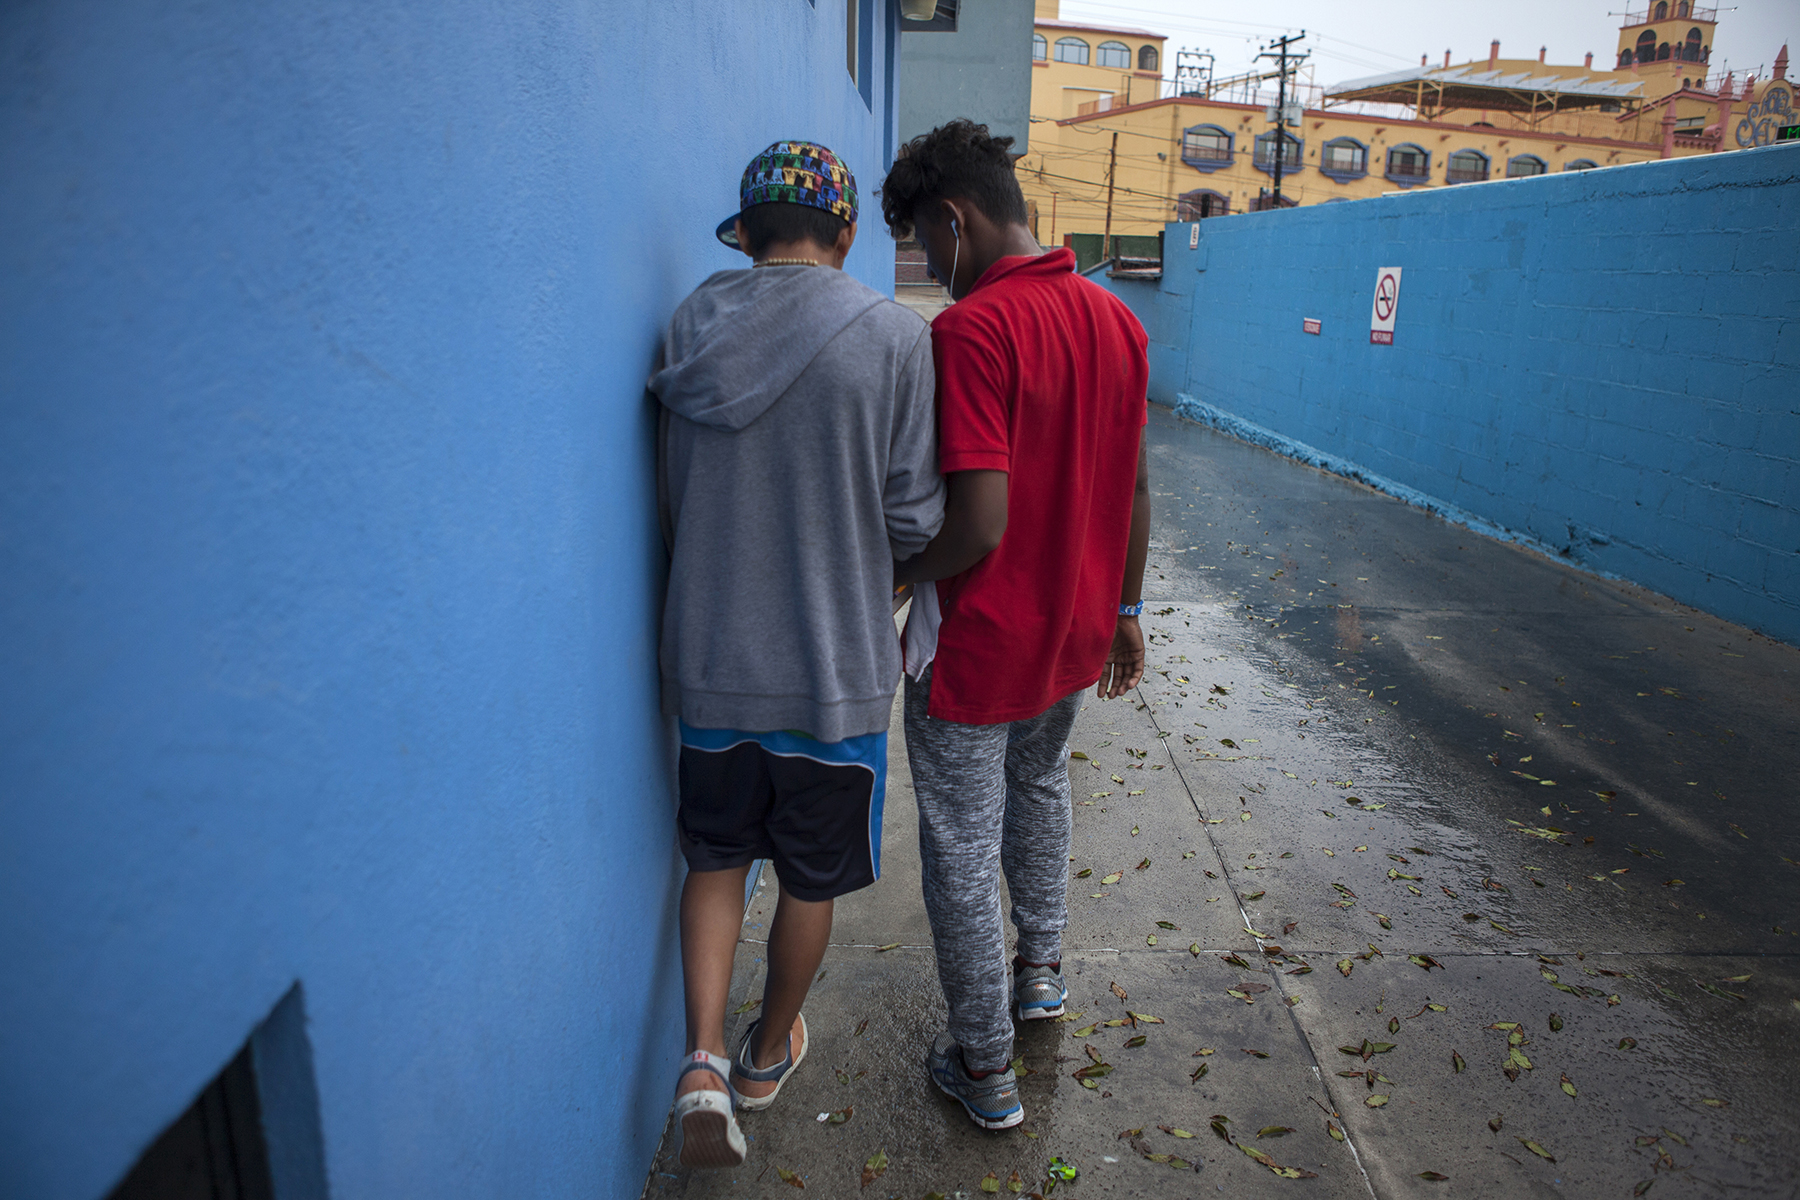 Unaccompanied child and teenage migrants like Vladi from El Salvador, shown here (L), stay in Tijuana, Mexico's only shelter for minors on November 29, 2018. CREDIT: Erin Siegal McIntyre for Frontline